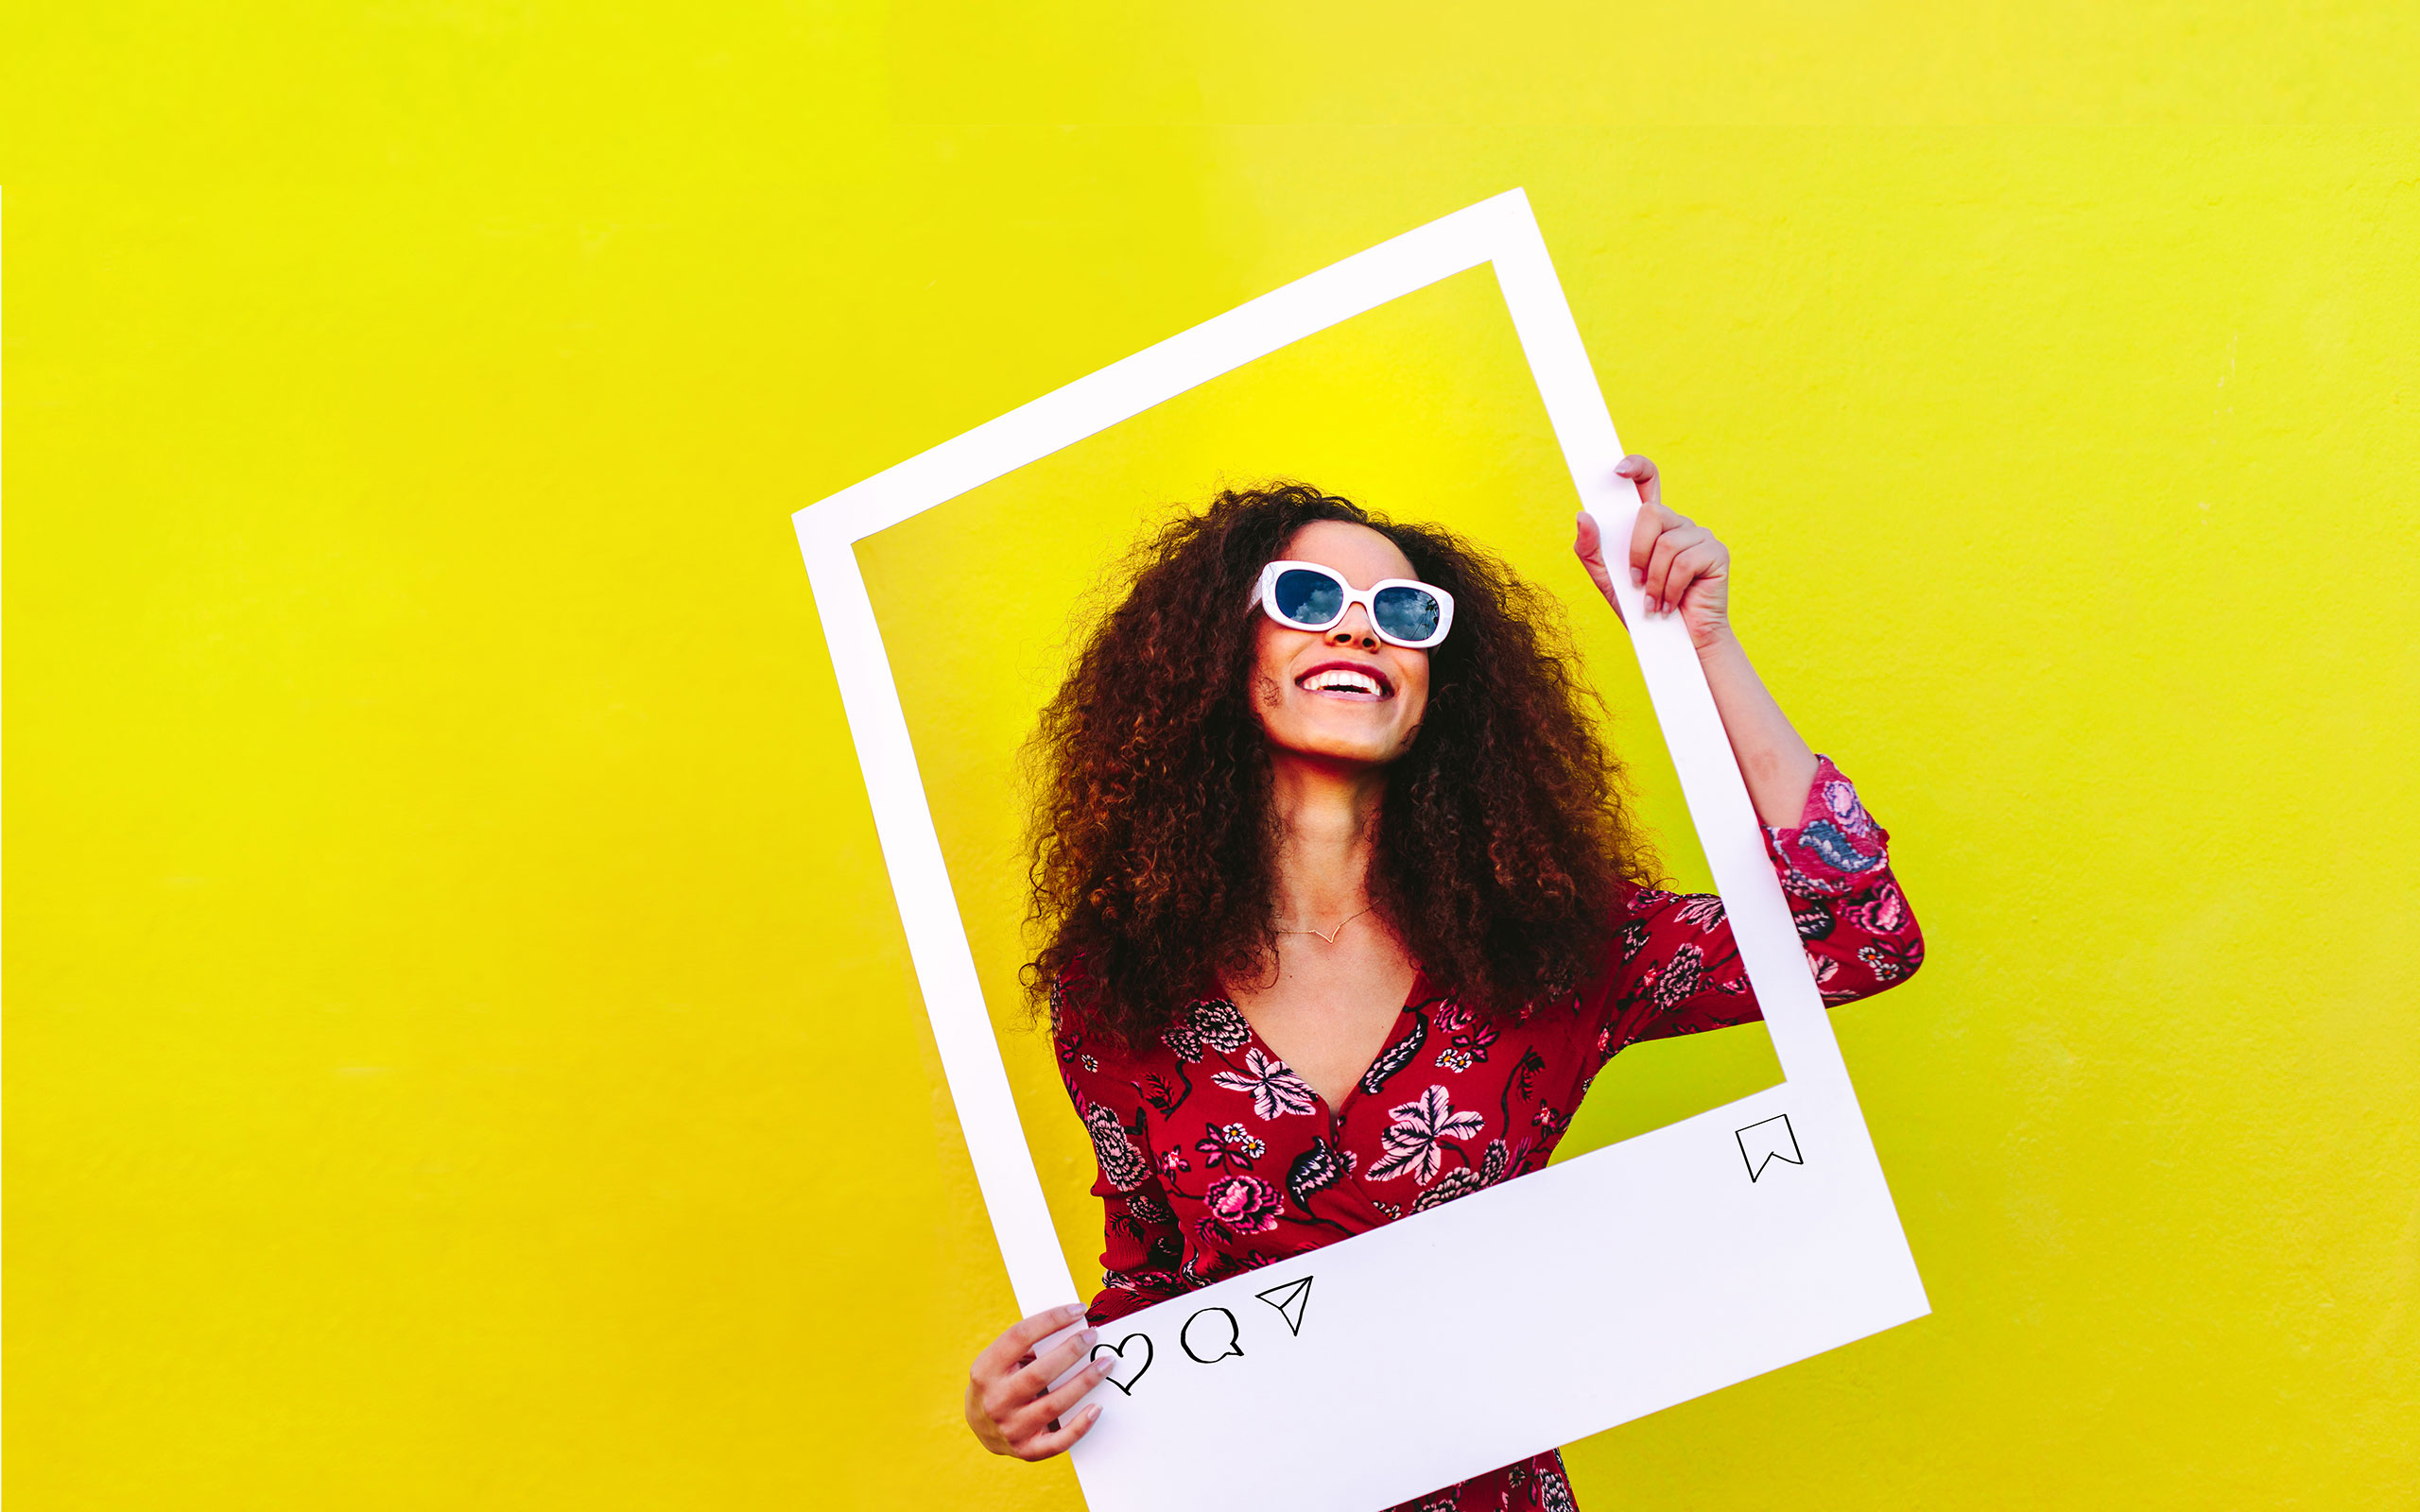 Woman wearing dress and sunglasses smiling within a large Polaroid frame cut-out that she's holding up